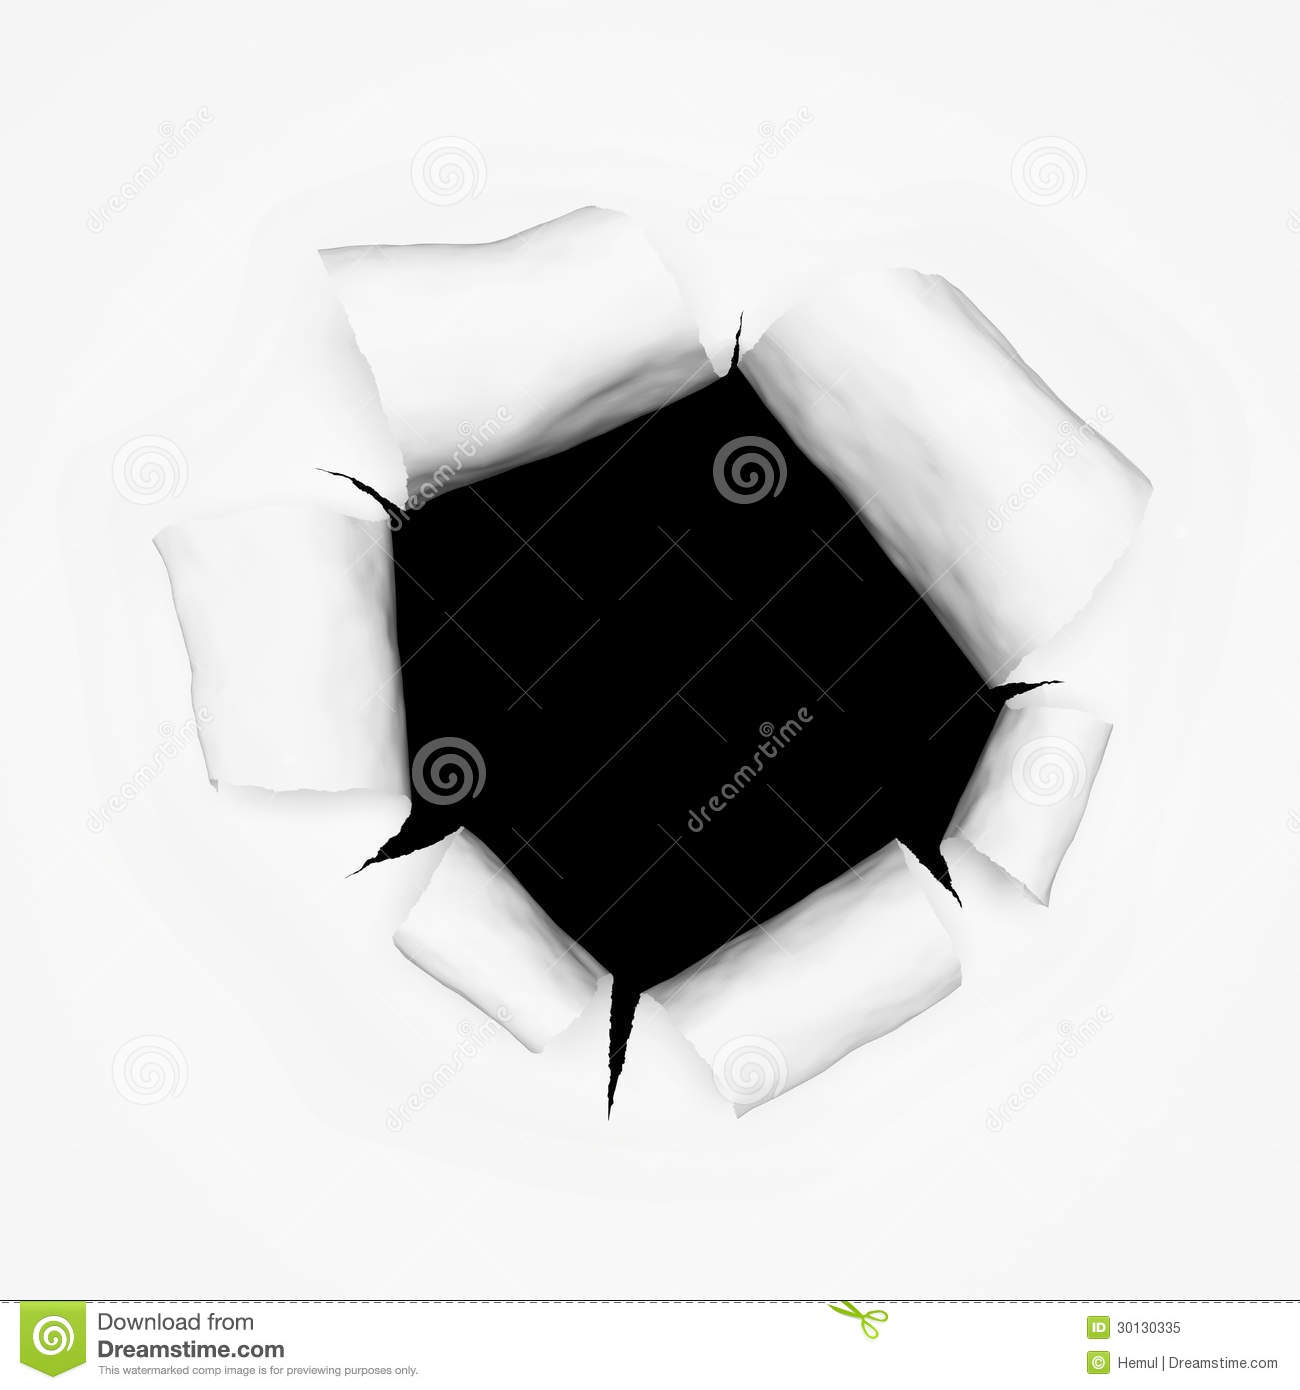 Breakthrough paper hole 3d stock illustration image of for 3d sketch online free